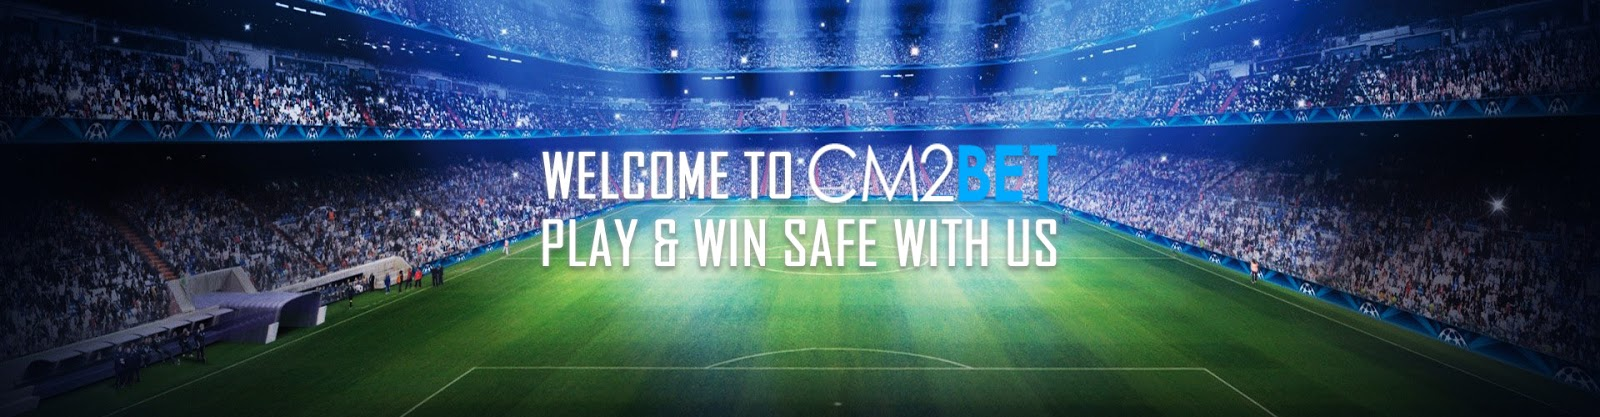 Welcome To Cm2bet Cm2bet